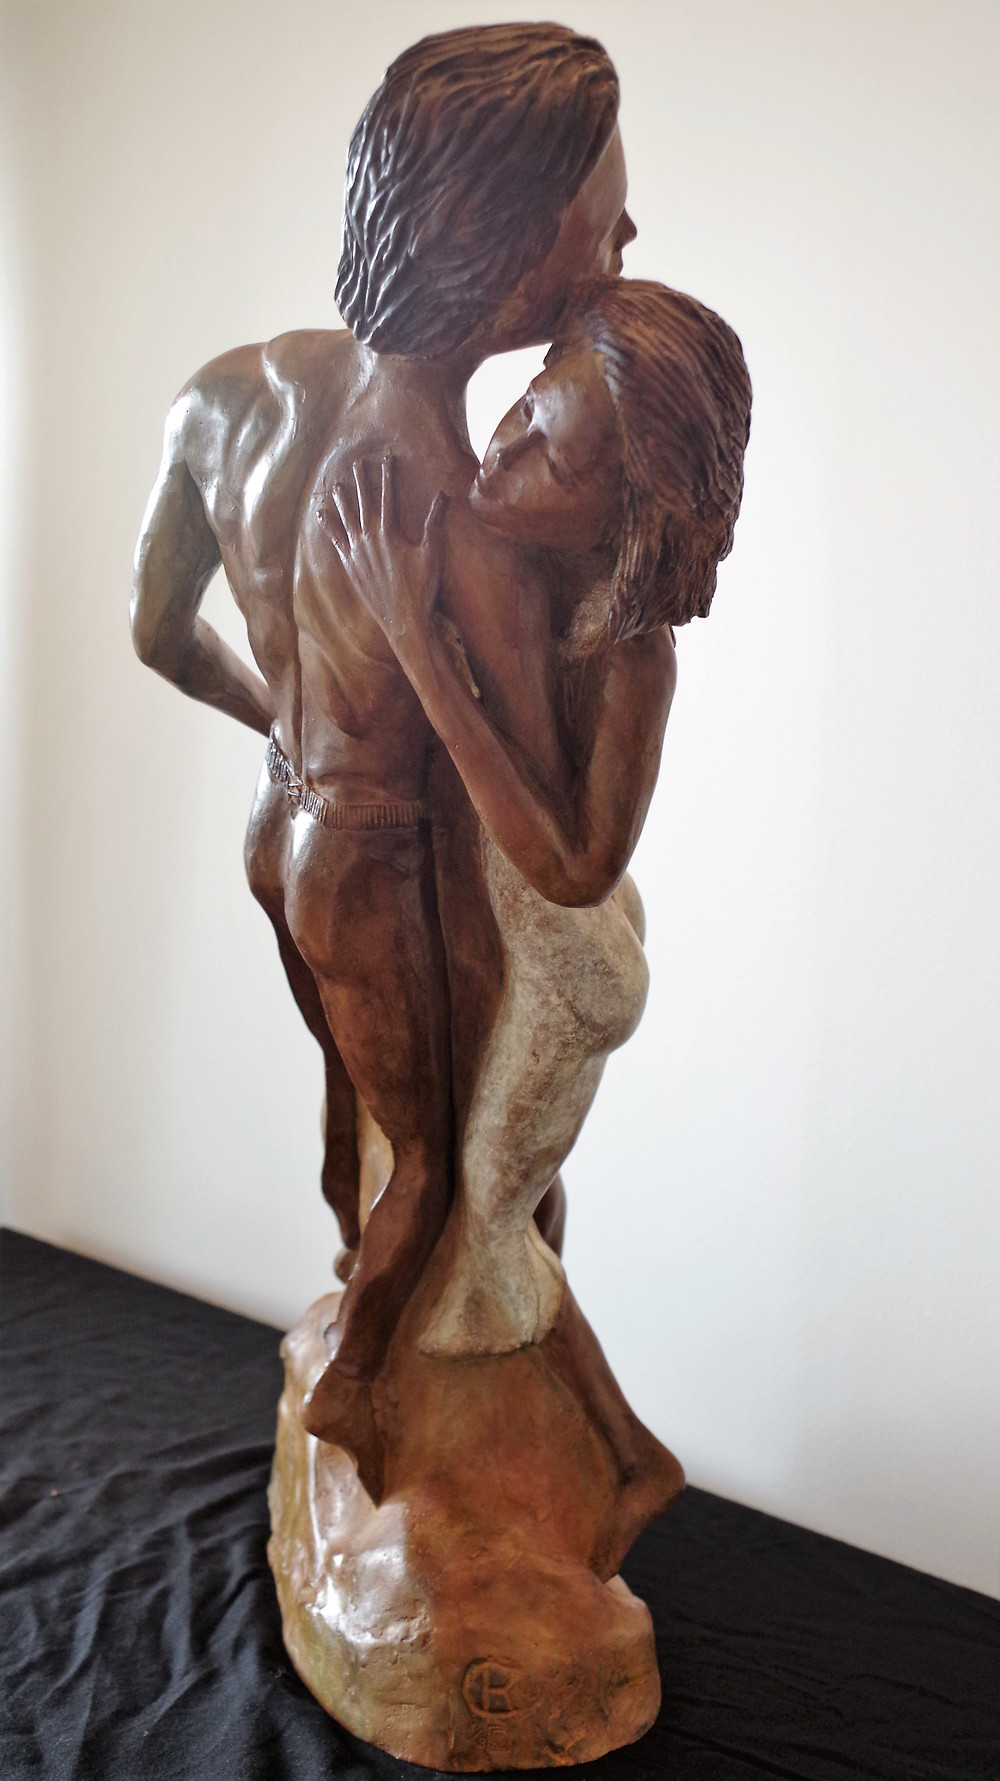 Un couple qui valse, une sculpture contemporaine, un bronze éternel...!!!